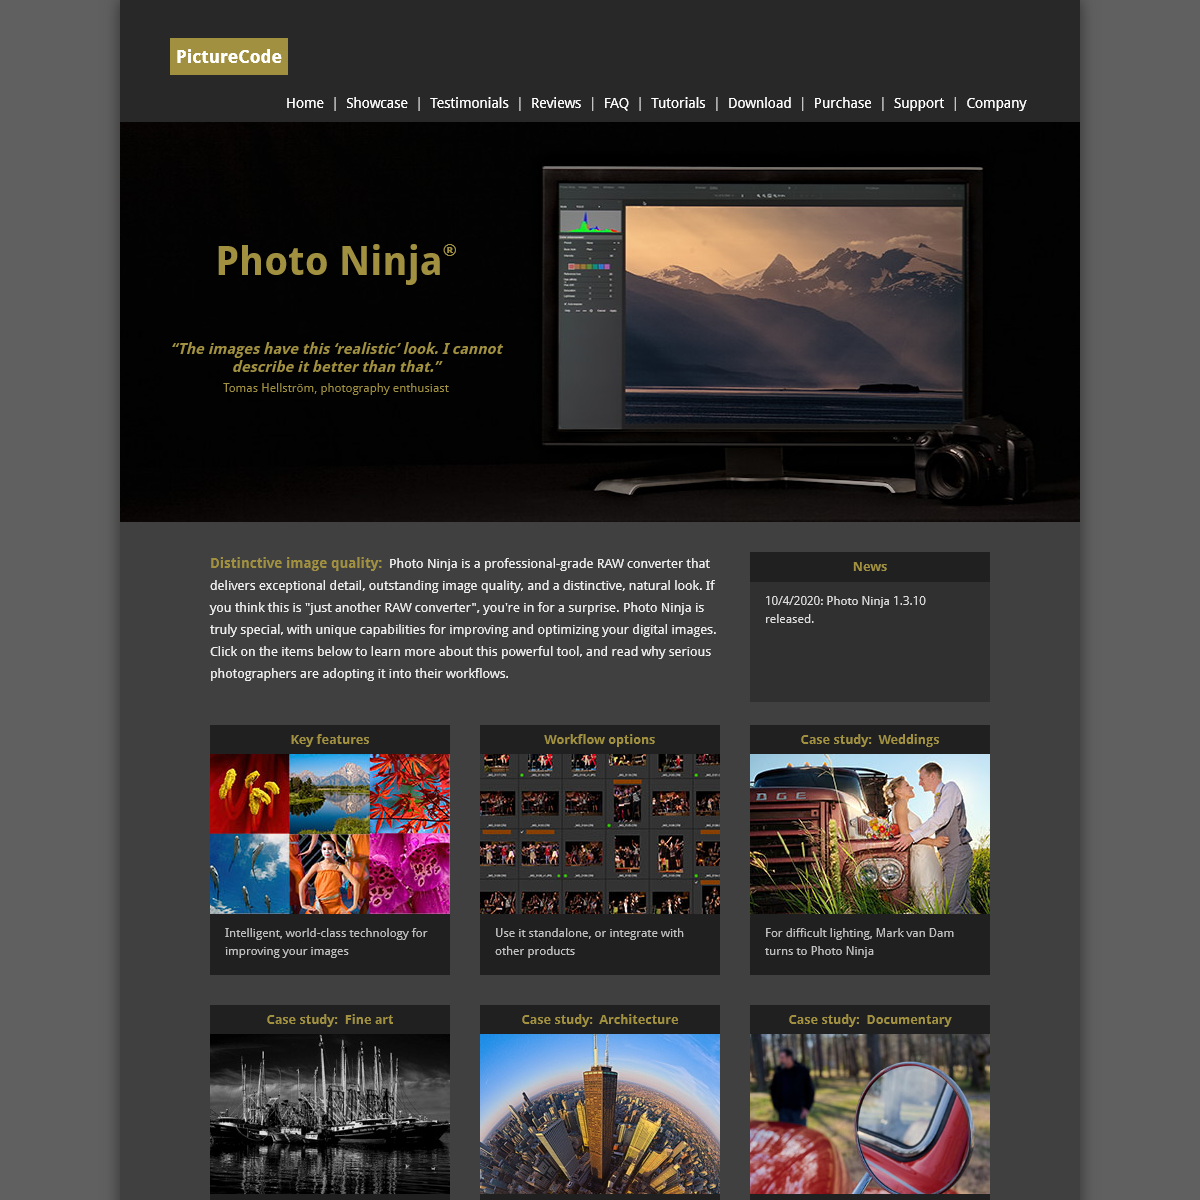 PictureCode home page- Photo Ninja